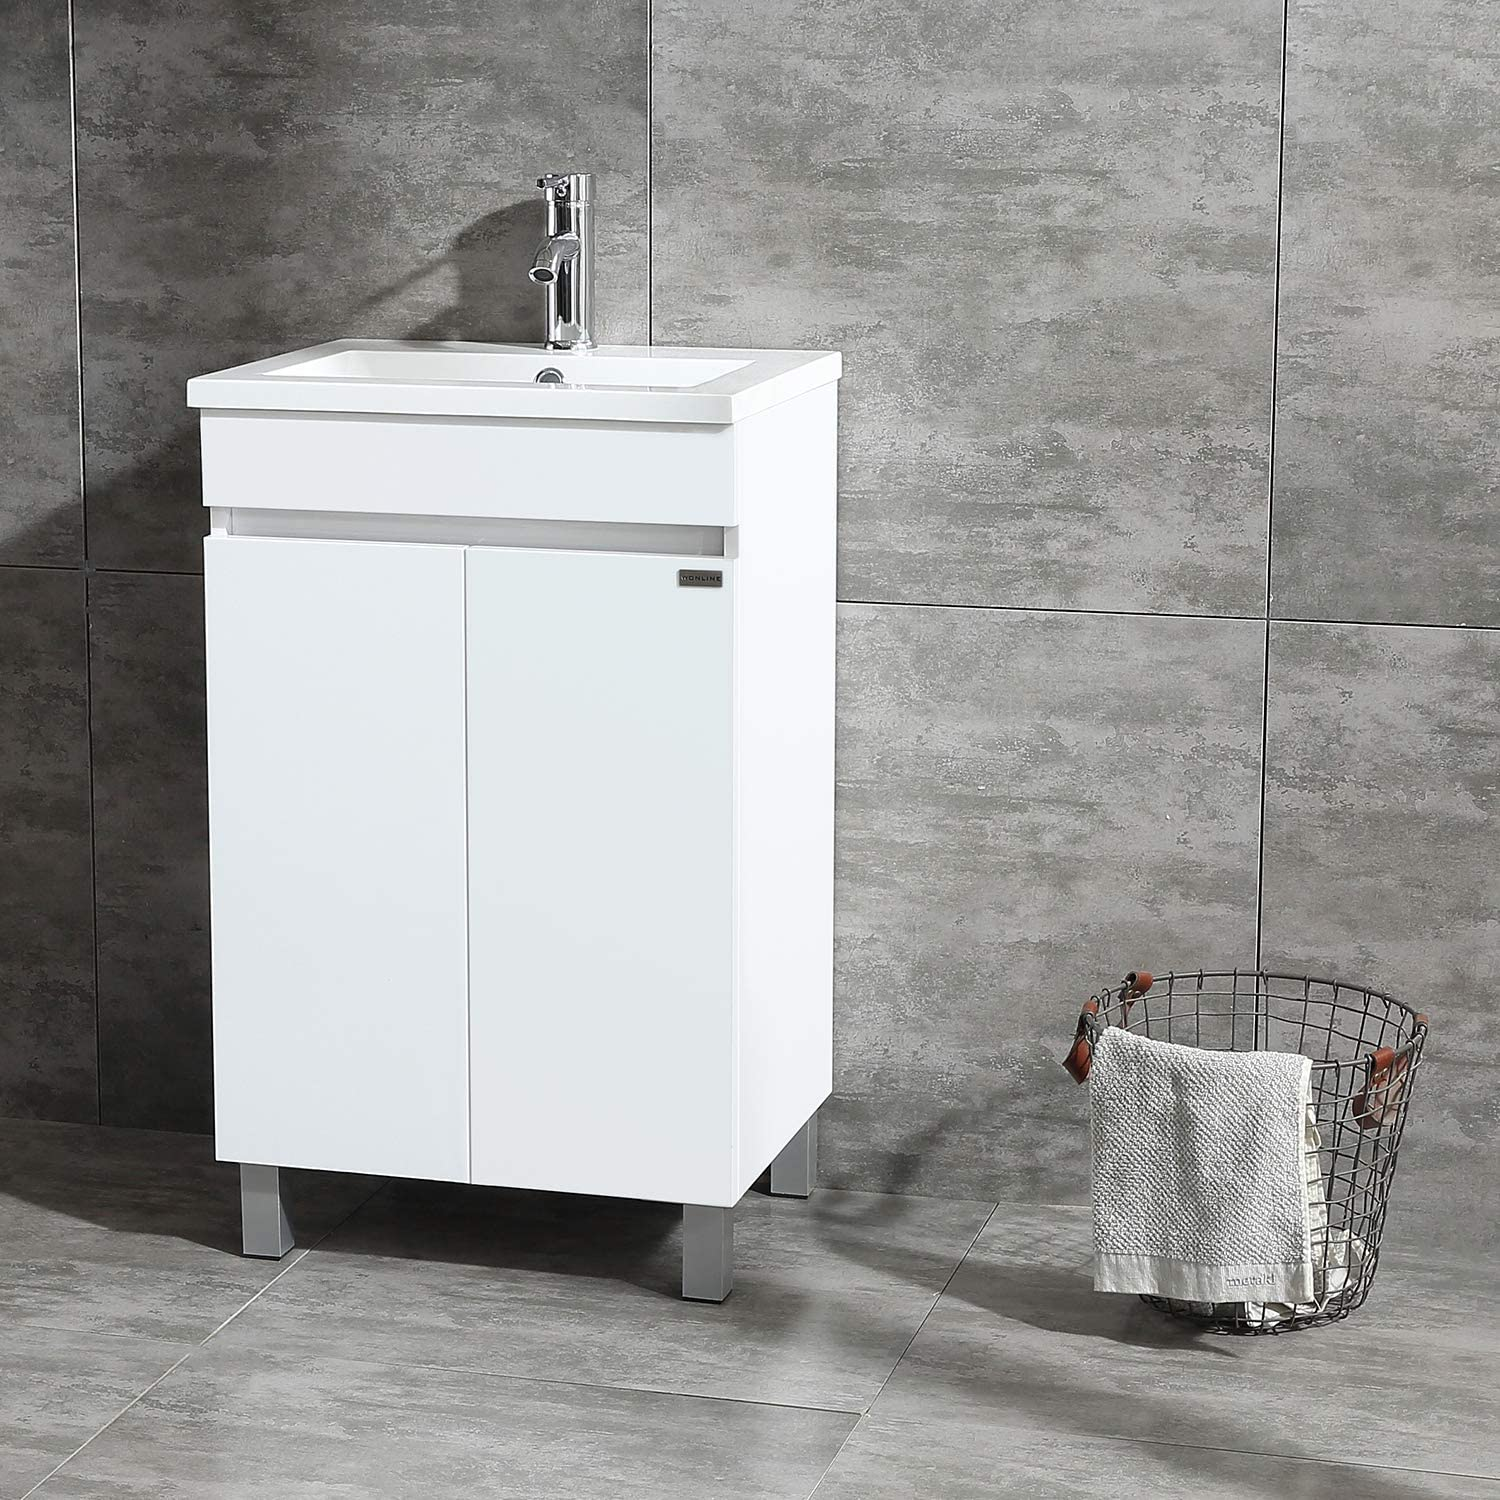 Buy Sliverylake 20 Inch Free Standing Bathroom Vanity Cabinet With 2 Doors Undermount Resin Sink And Chrome Faucet Combo White Online In Indonesia B075fhk6fl